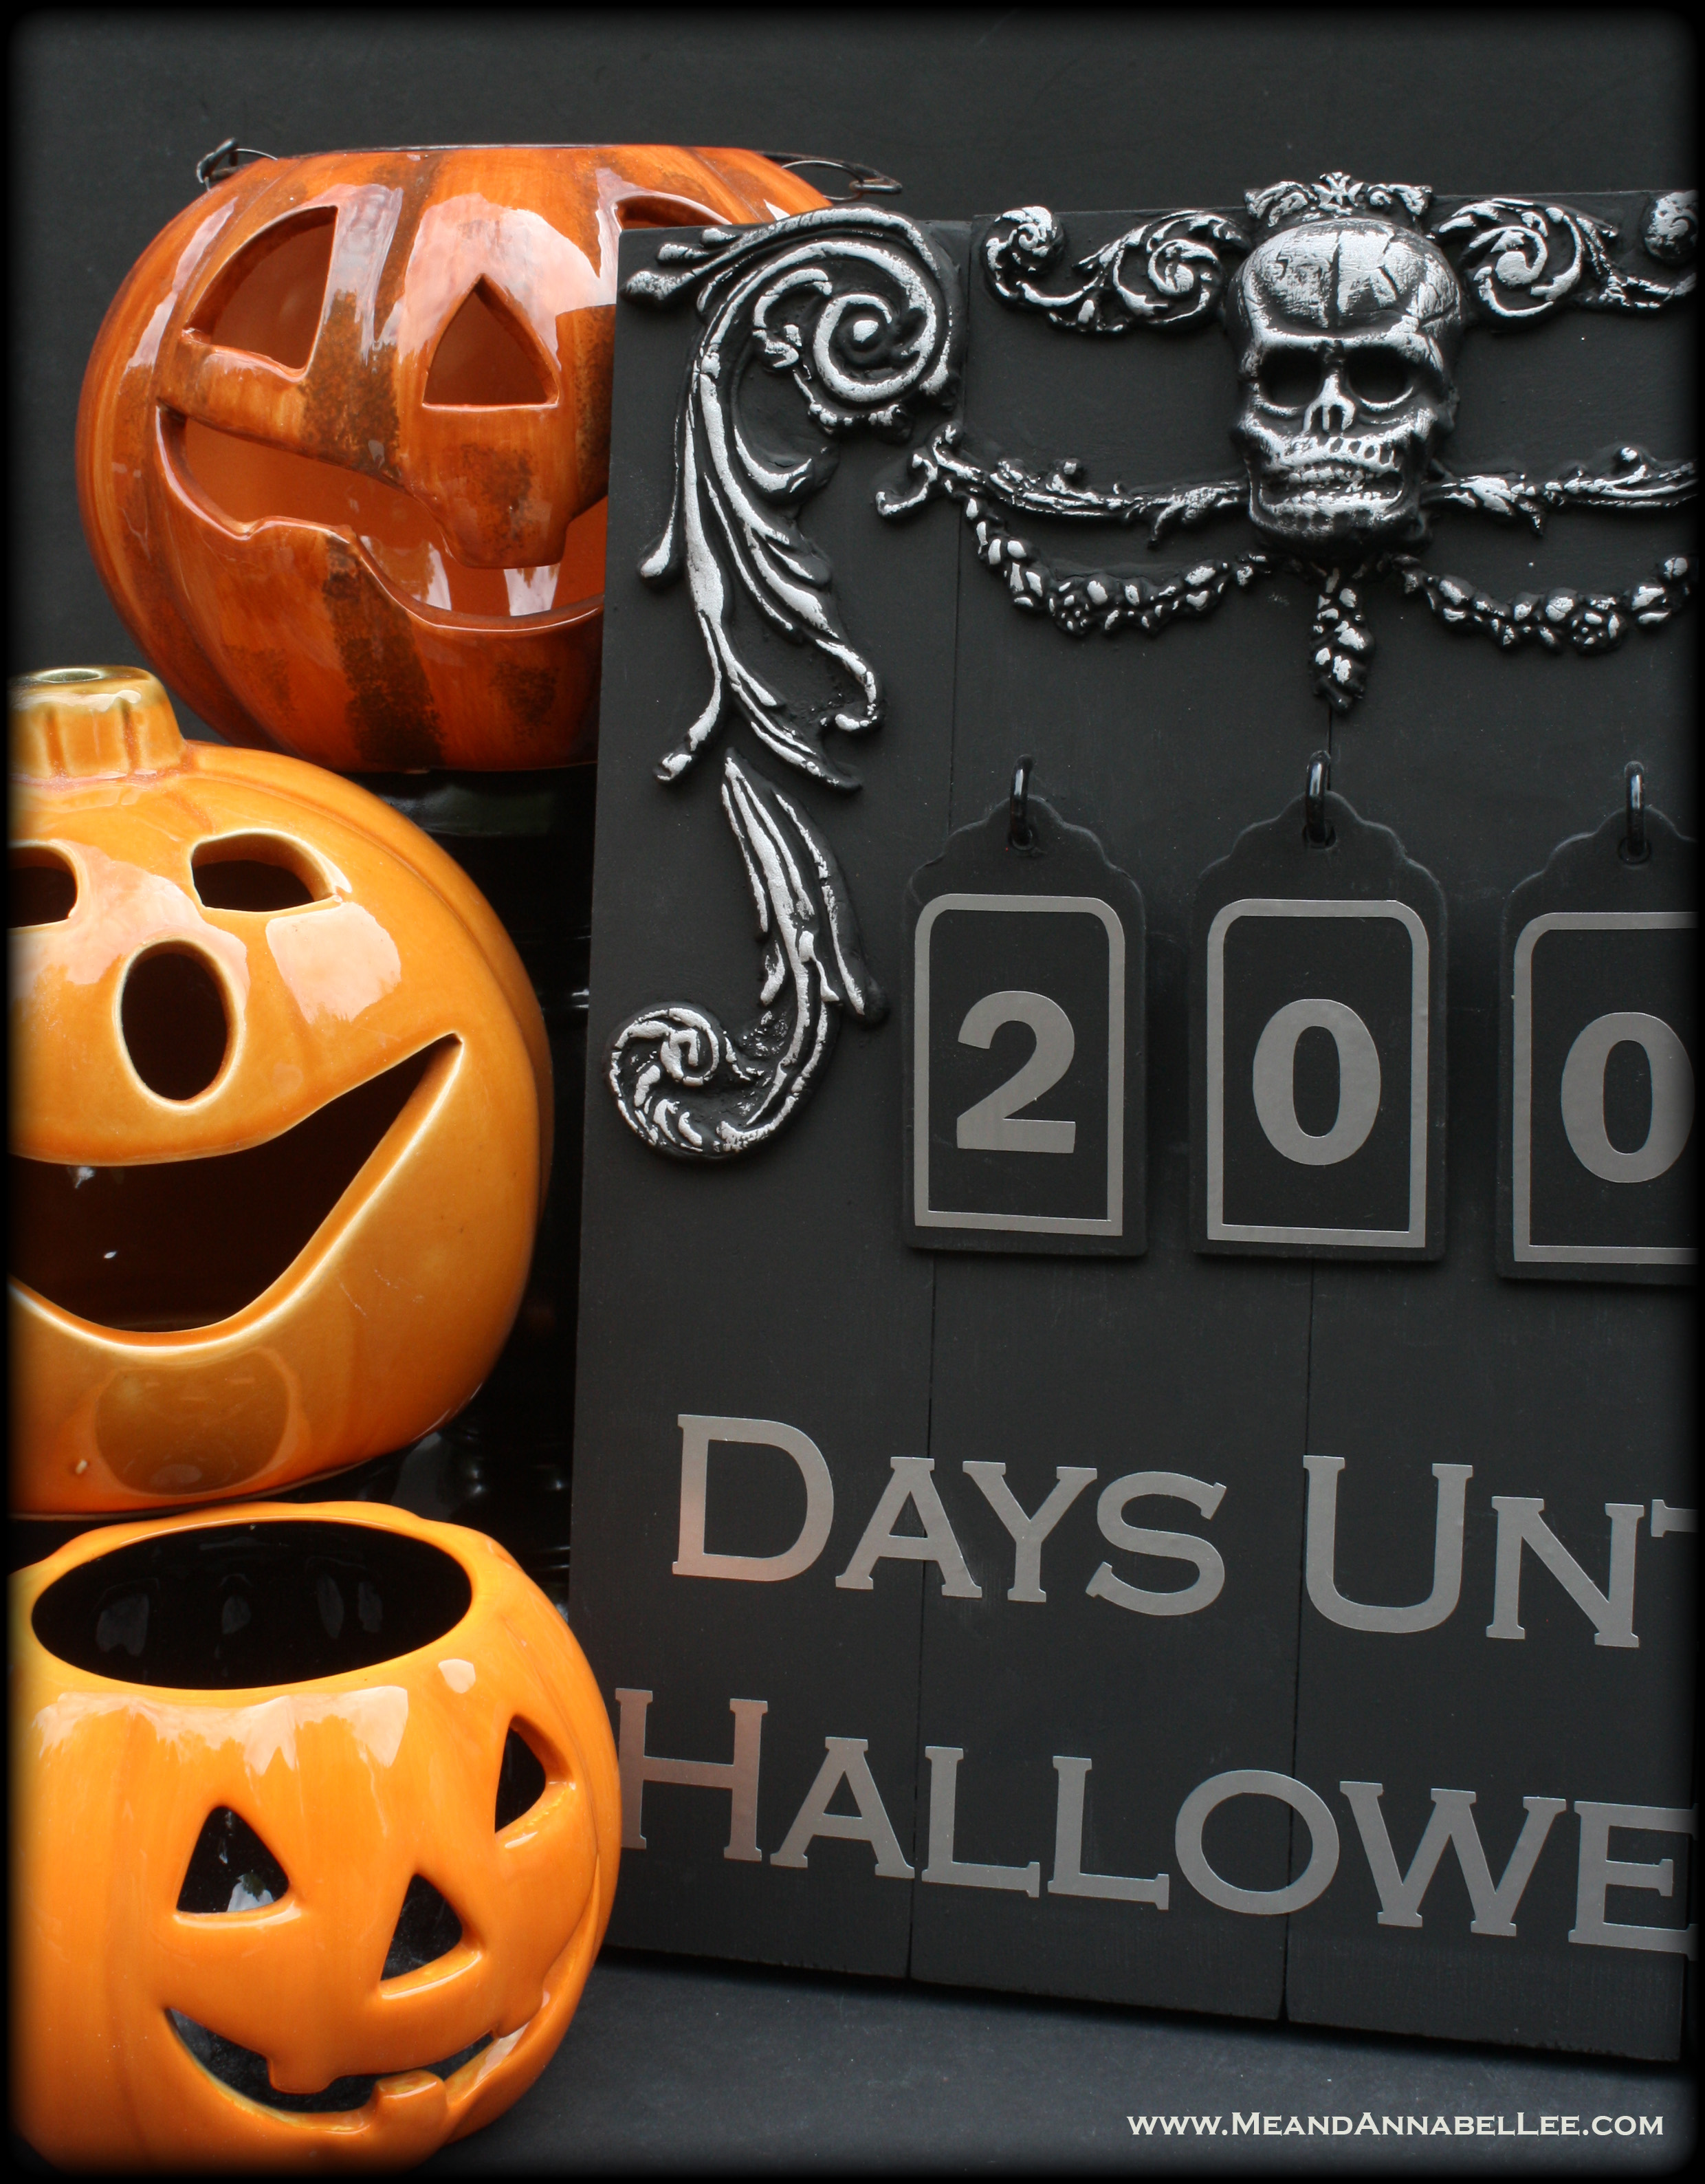 365 days until halloween skull countdown sign | me and annabel lee